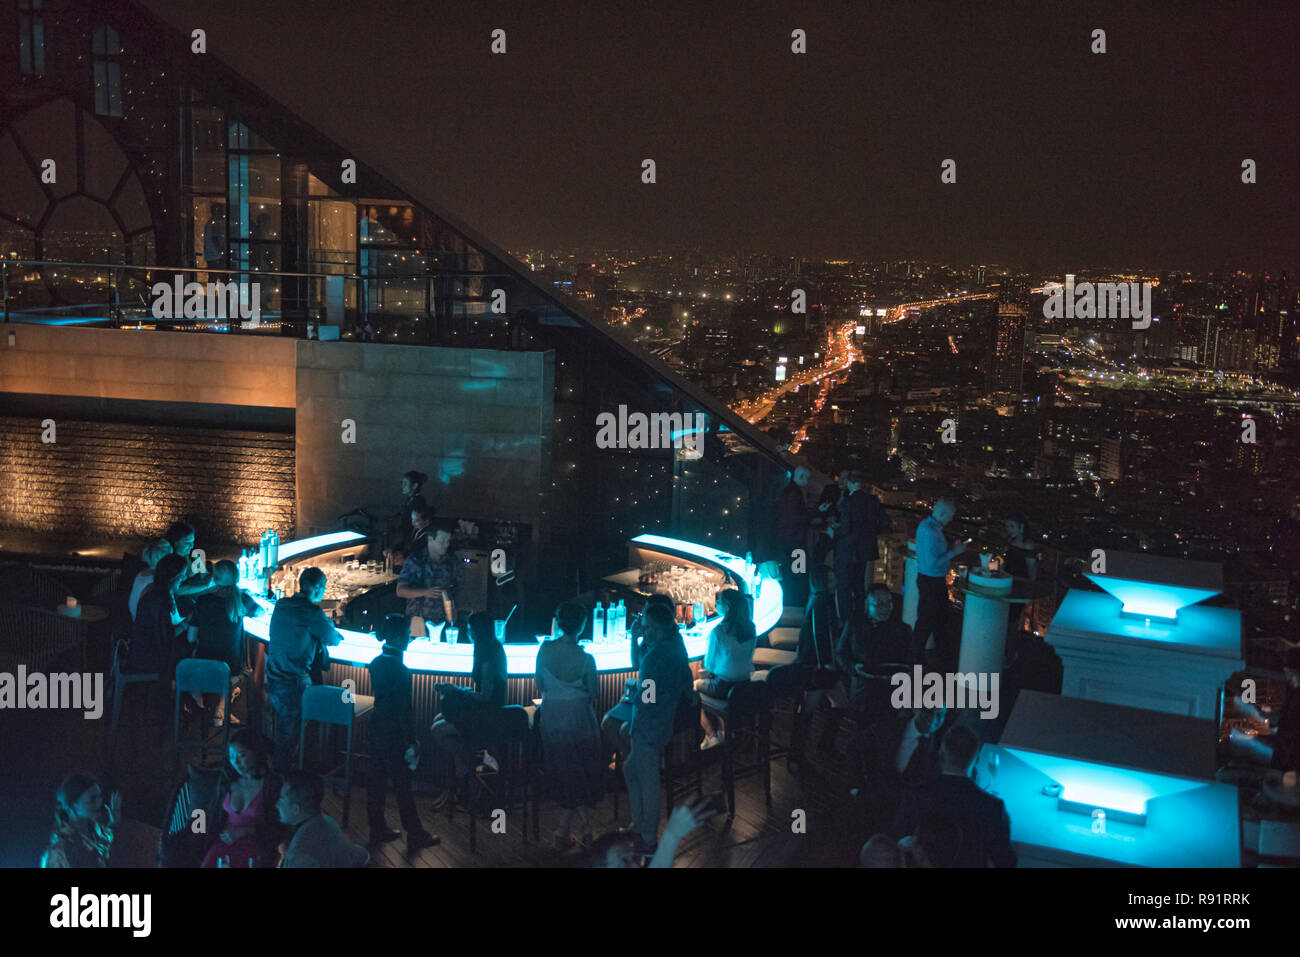 Looking out on the Bangkok cityscape from the Lebua No. 3 bar, Bangkok, Thailand - Stock Image